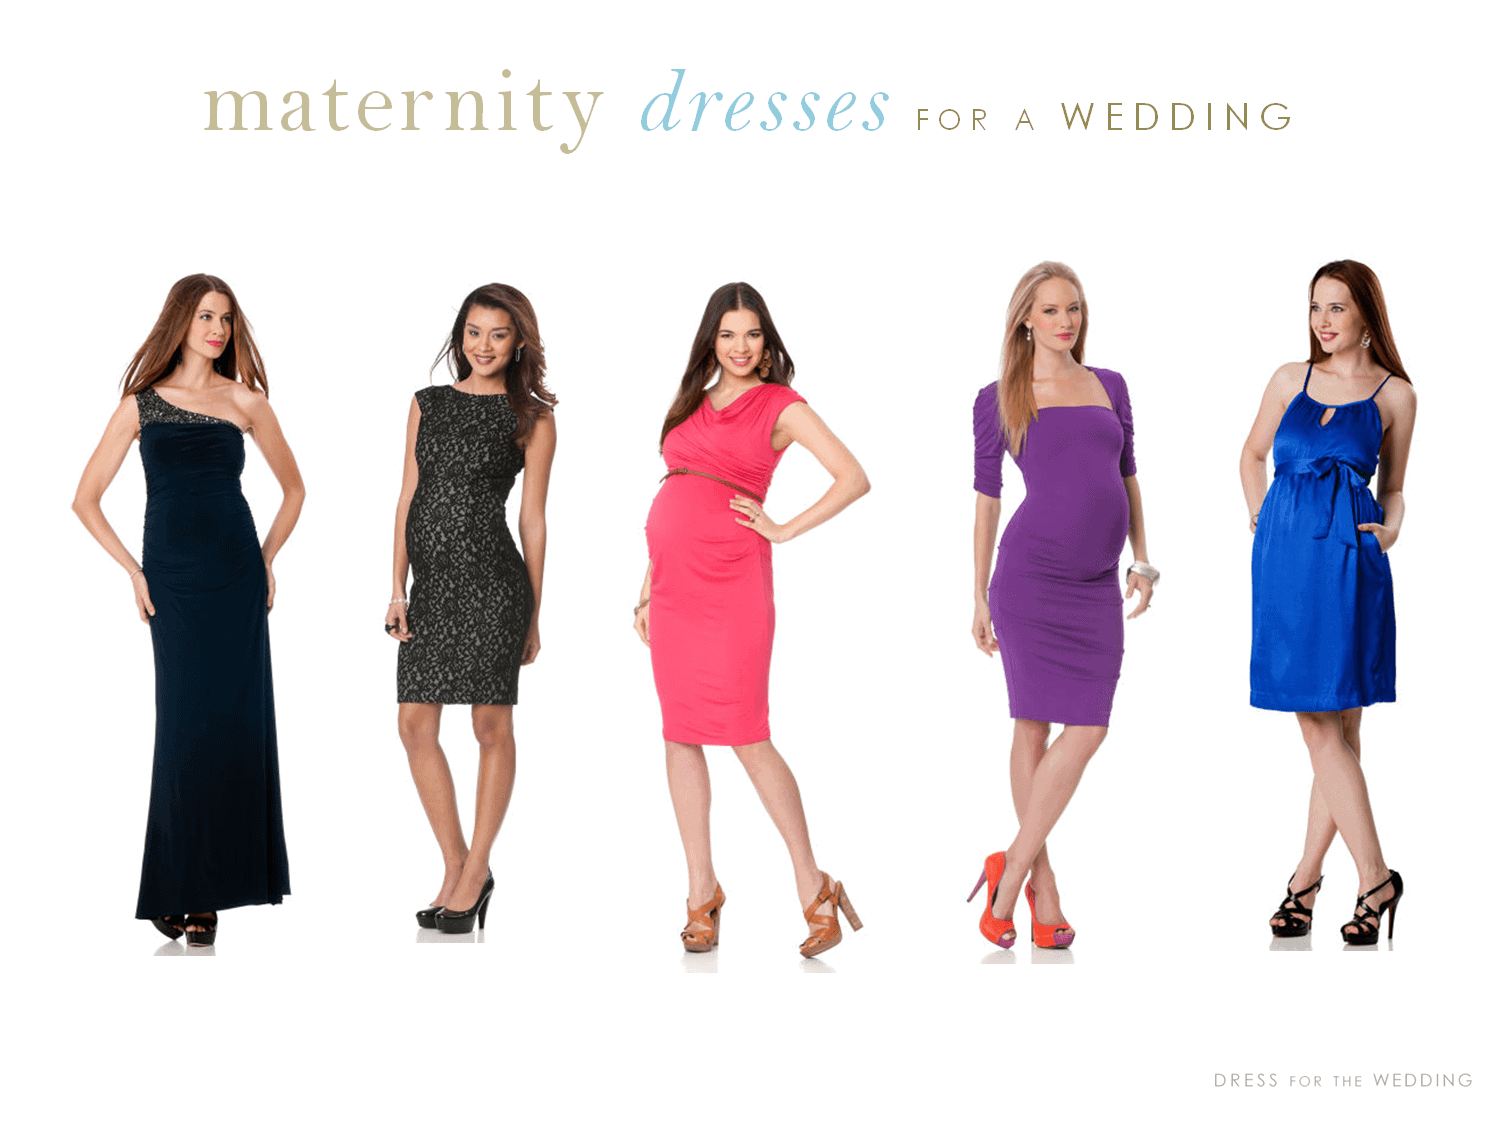 Maternity dresses archives at dress for the wedding wedding guest maternity dresses ombrellifo Images